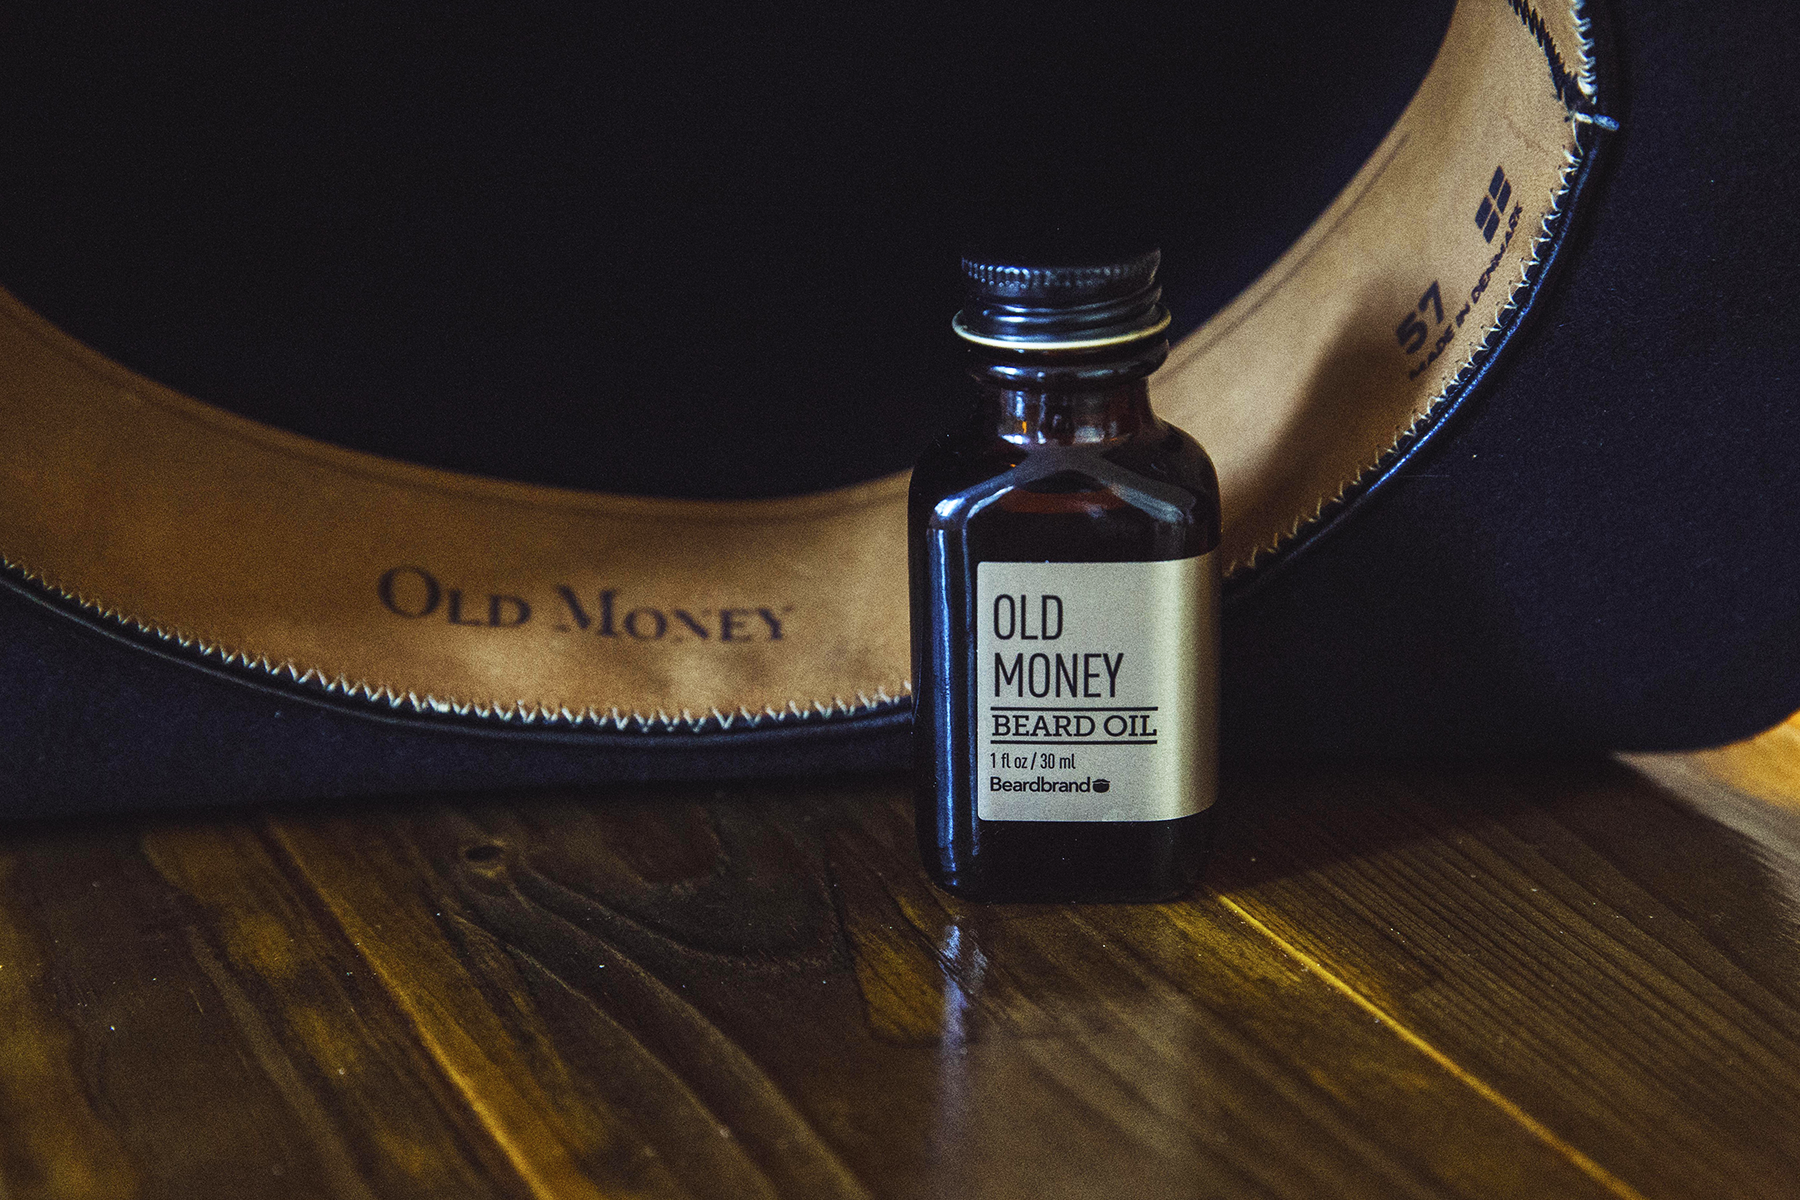 Old Money Hornskov hat & Beardbrand beard oil image